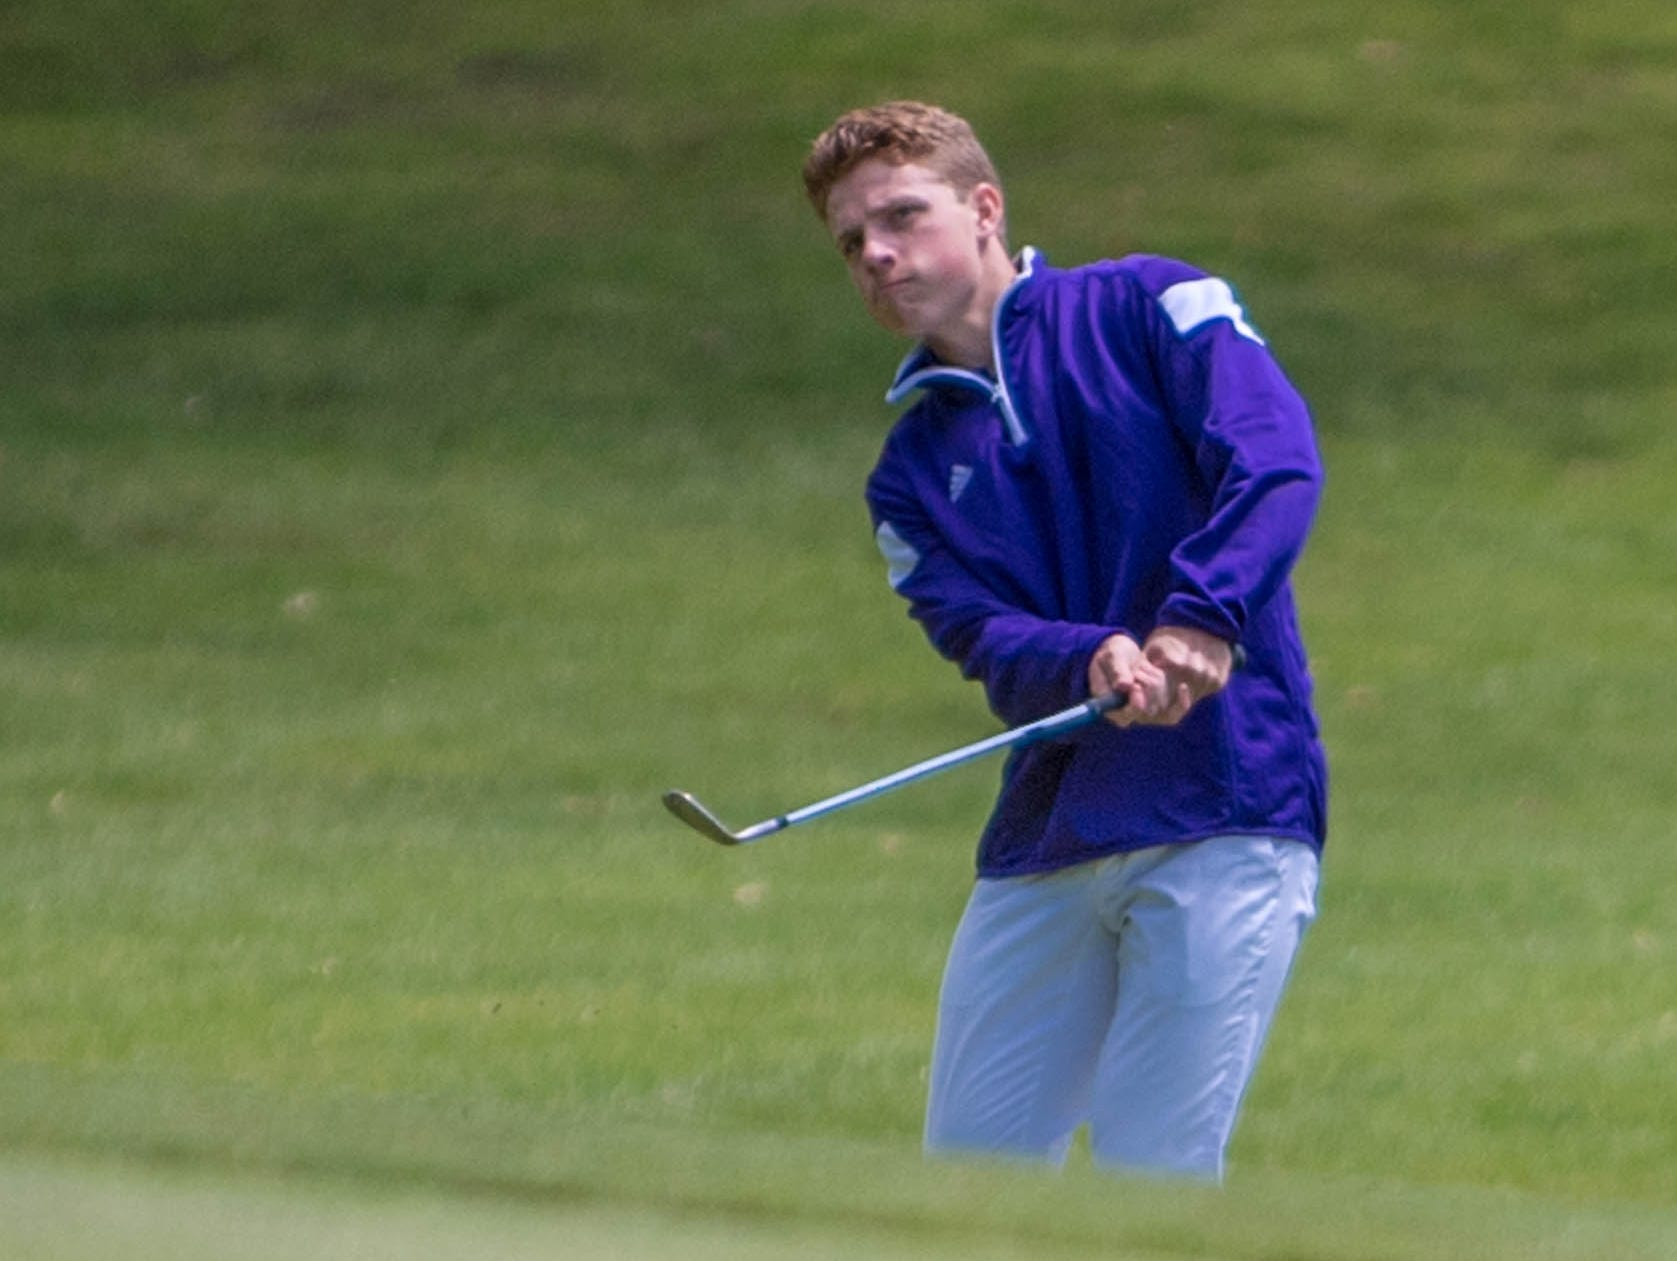 Lakeview junior James Staab chips to the green during All-City Golf Tournament at Riverside Golf Club on Friday.